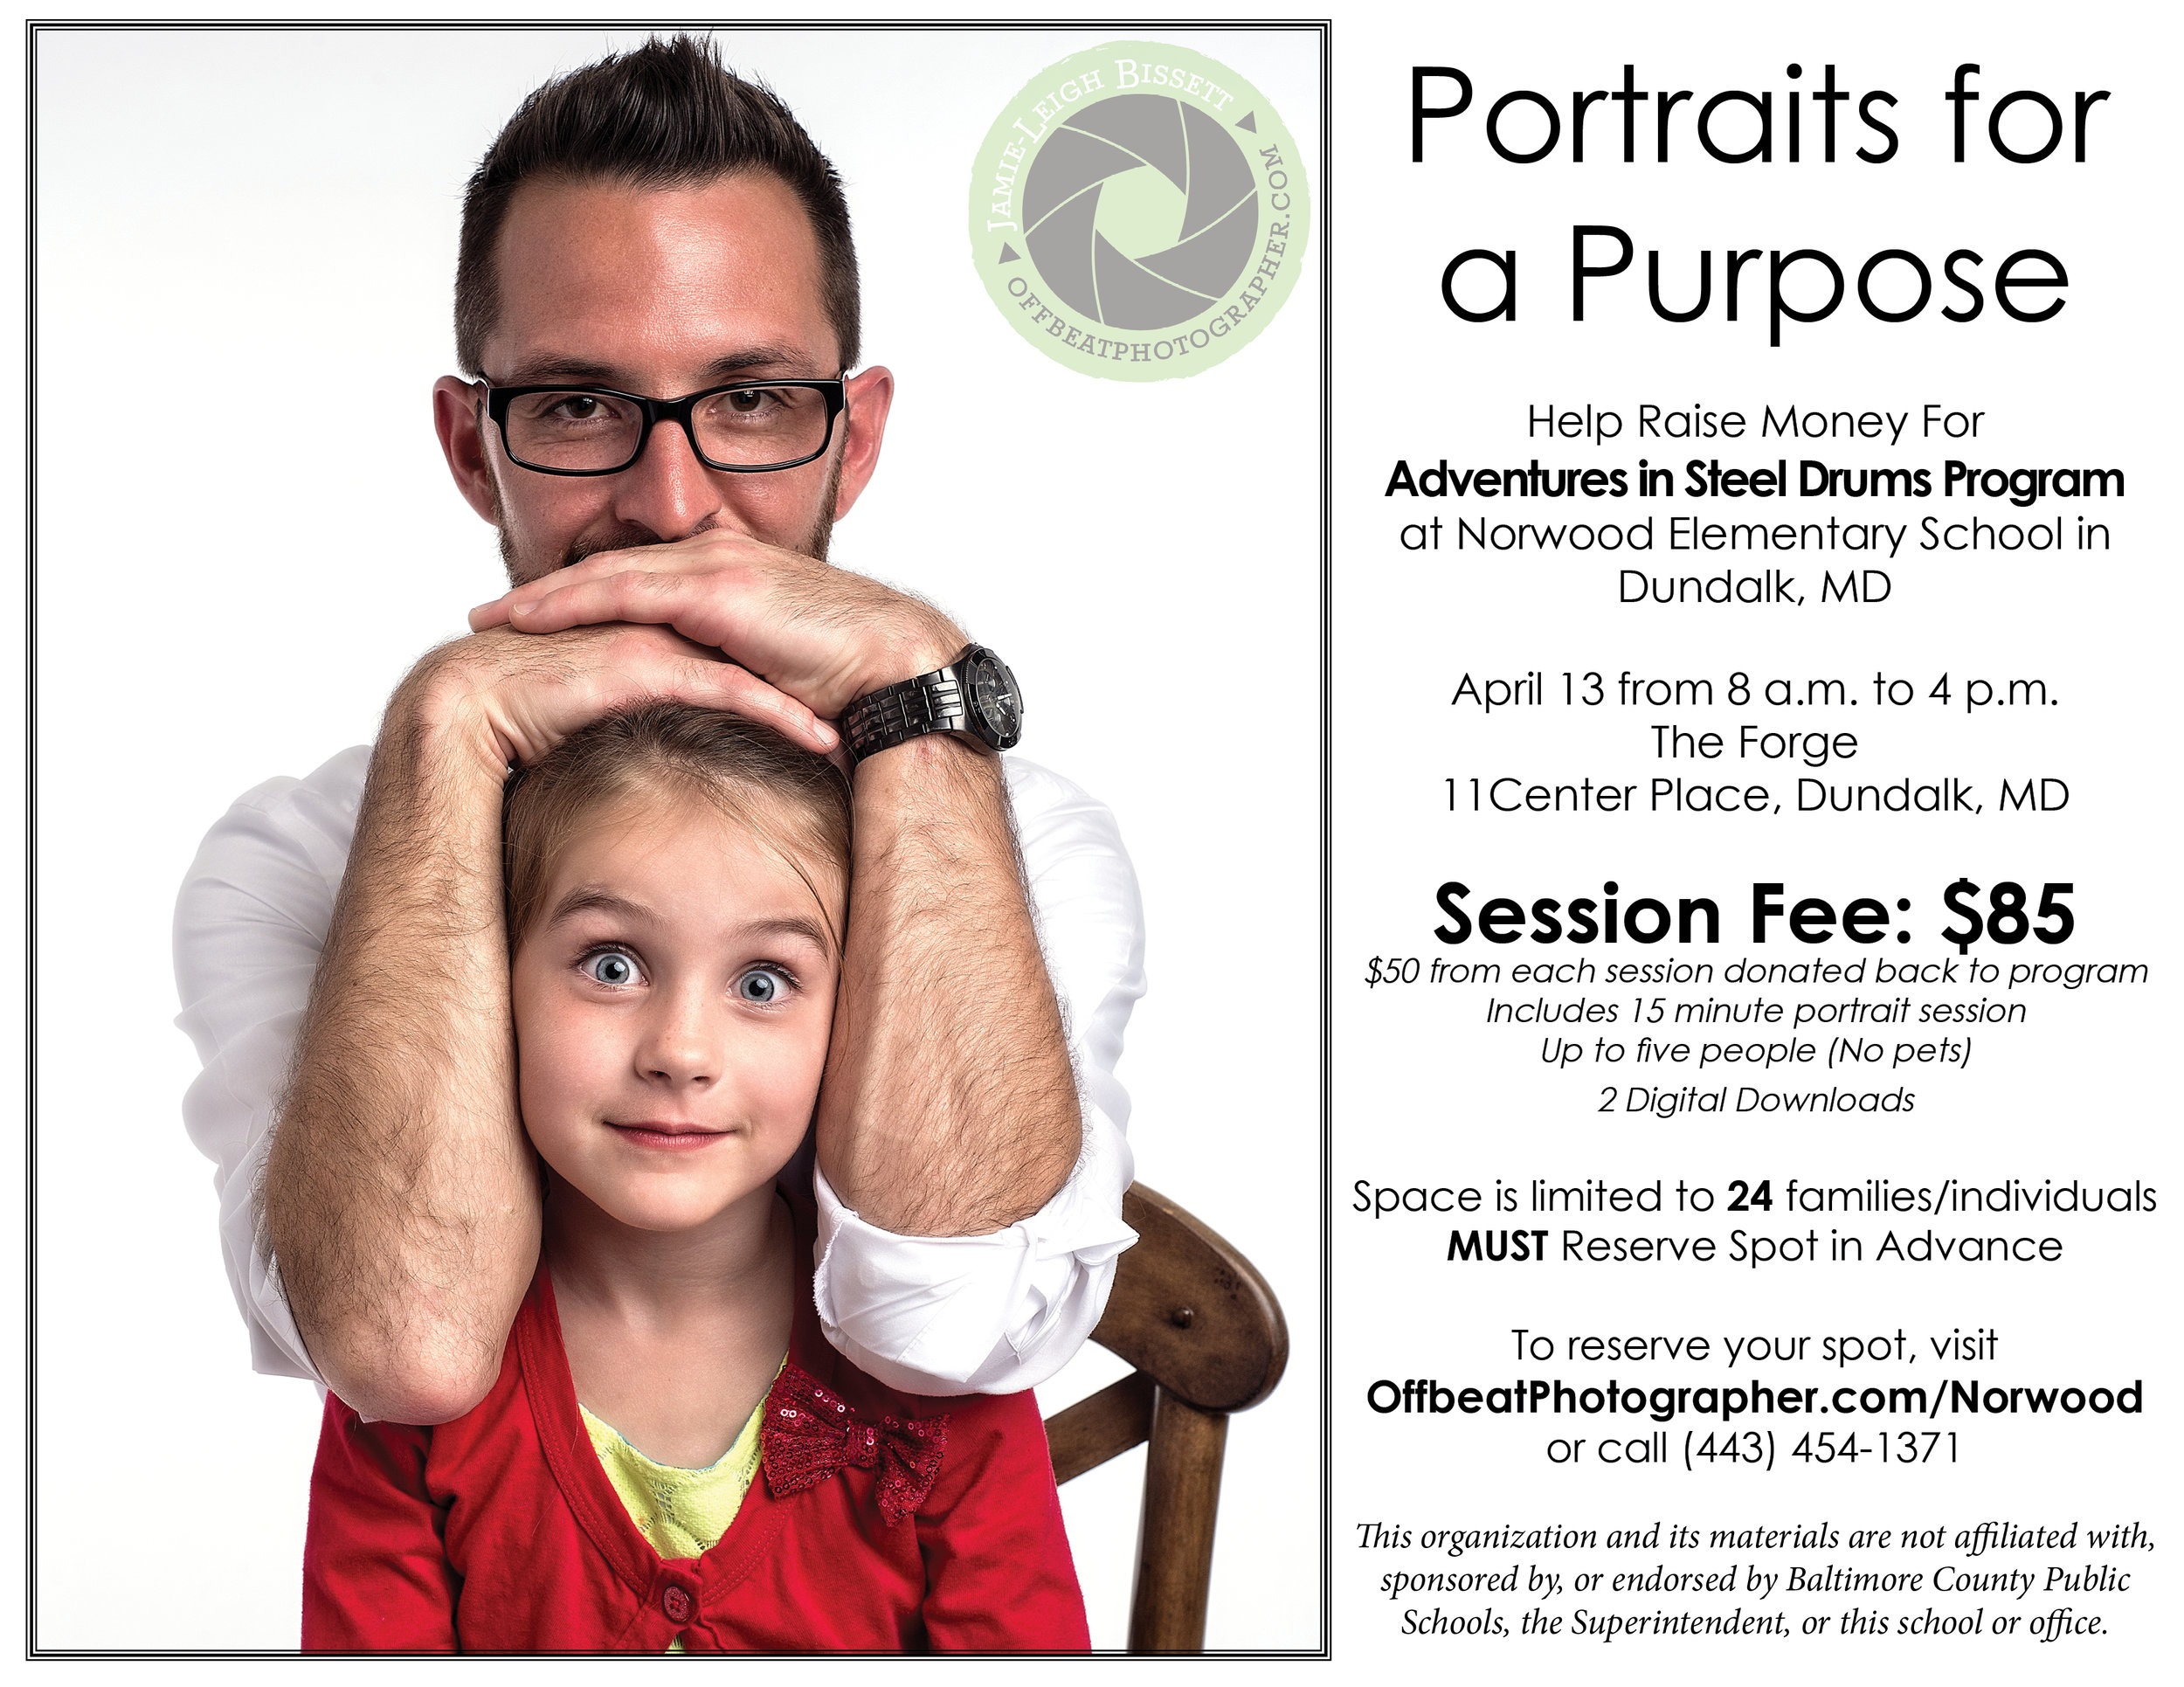 Portraits for a Purpose Fundraiser Flyer Design 4.jpg